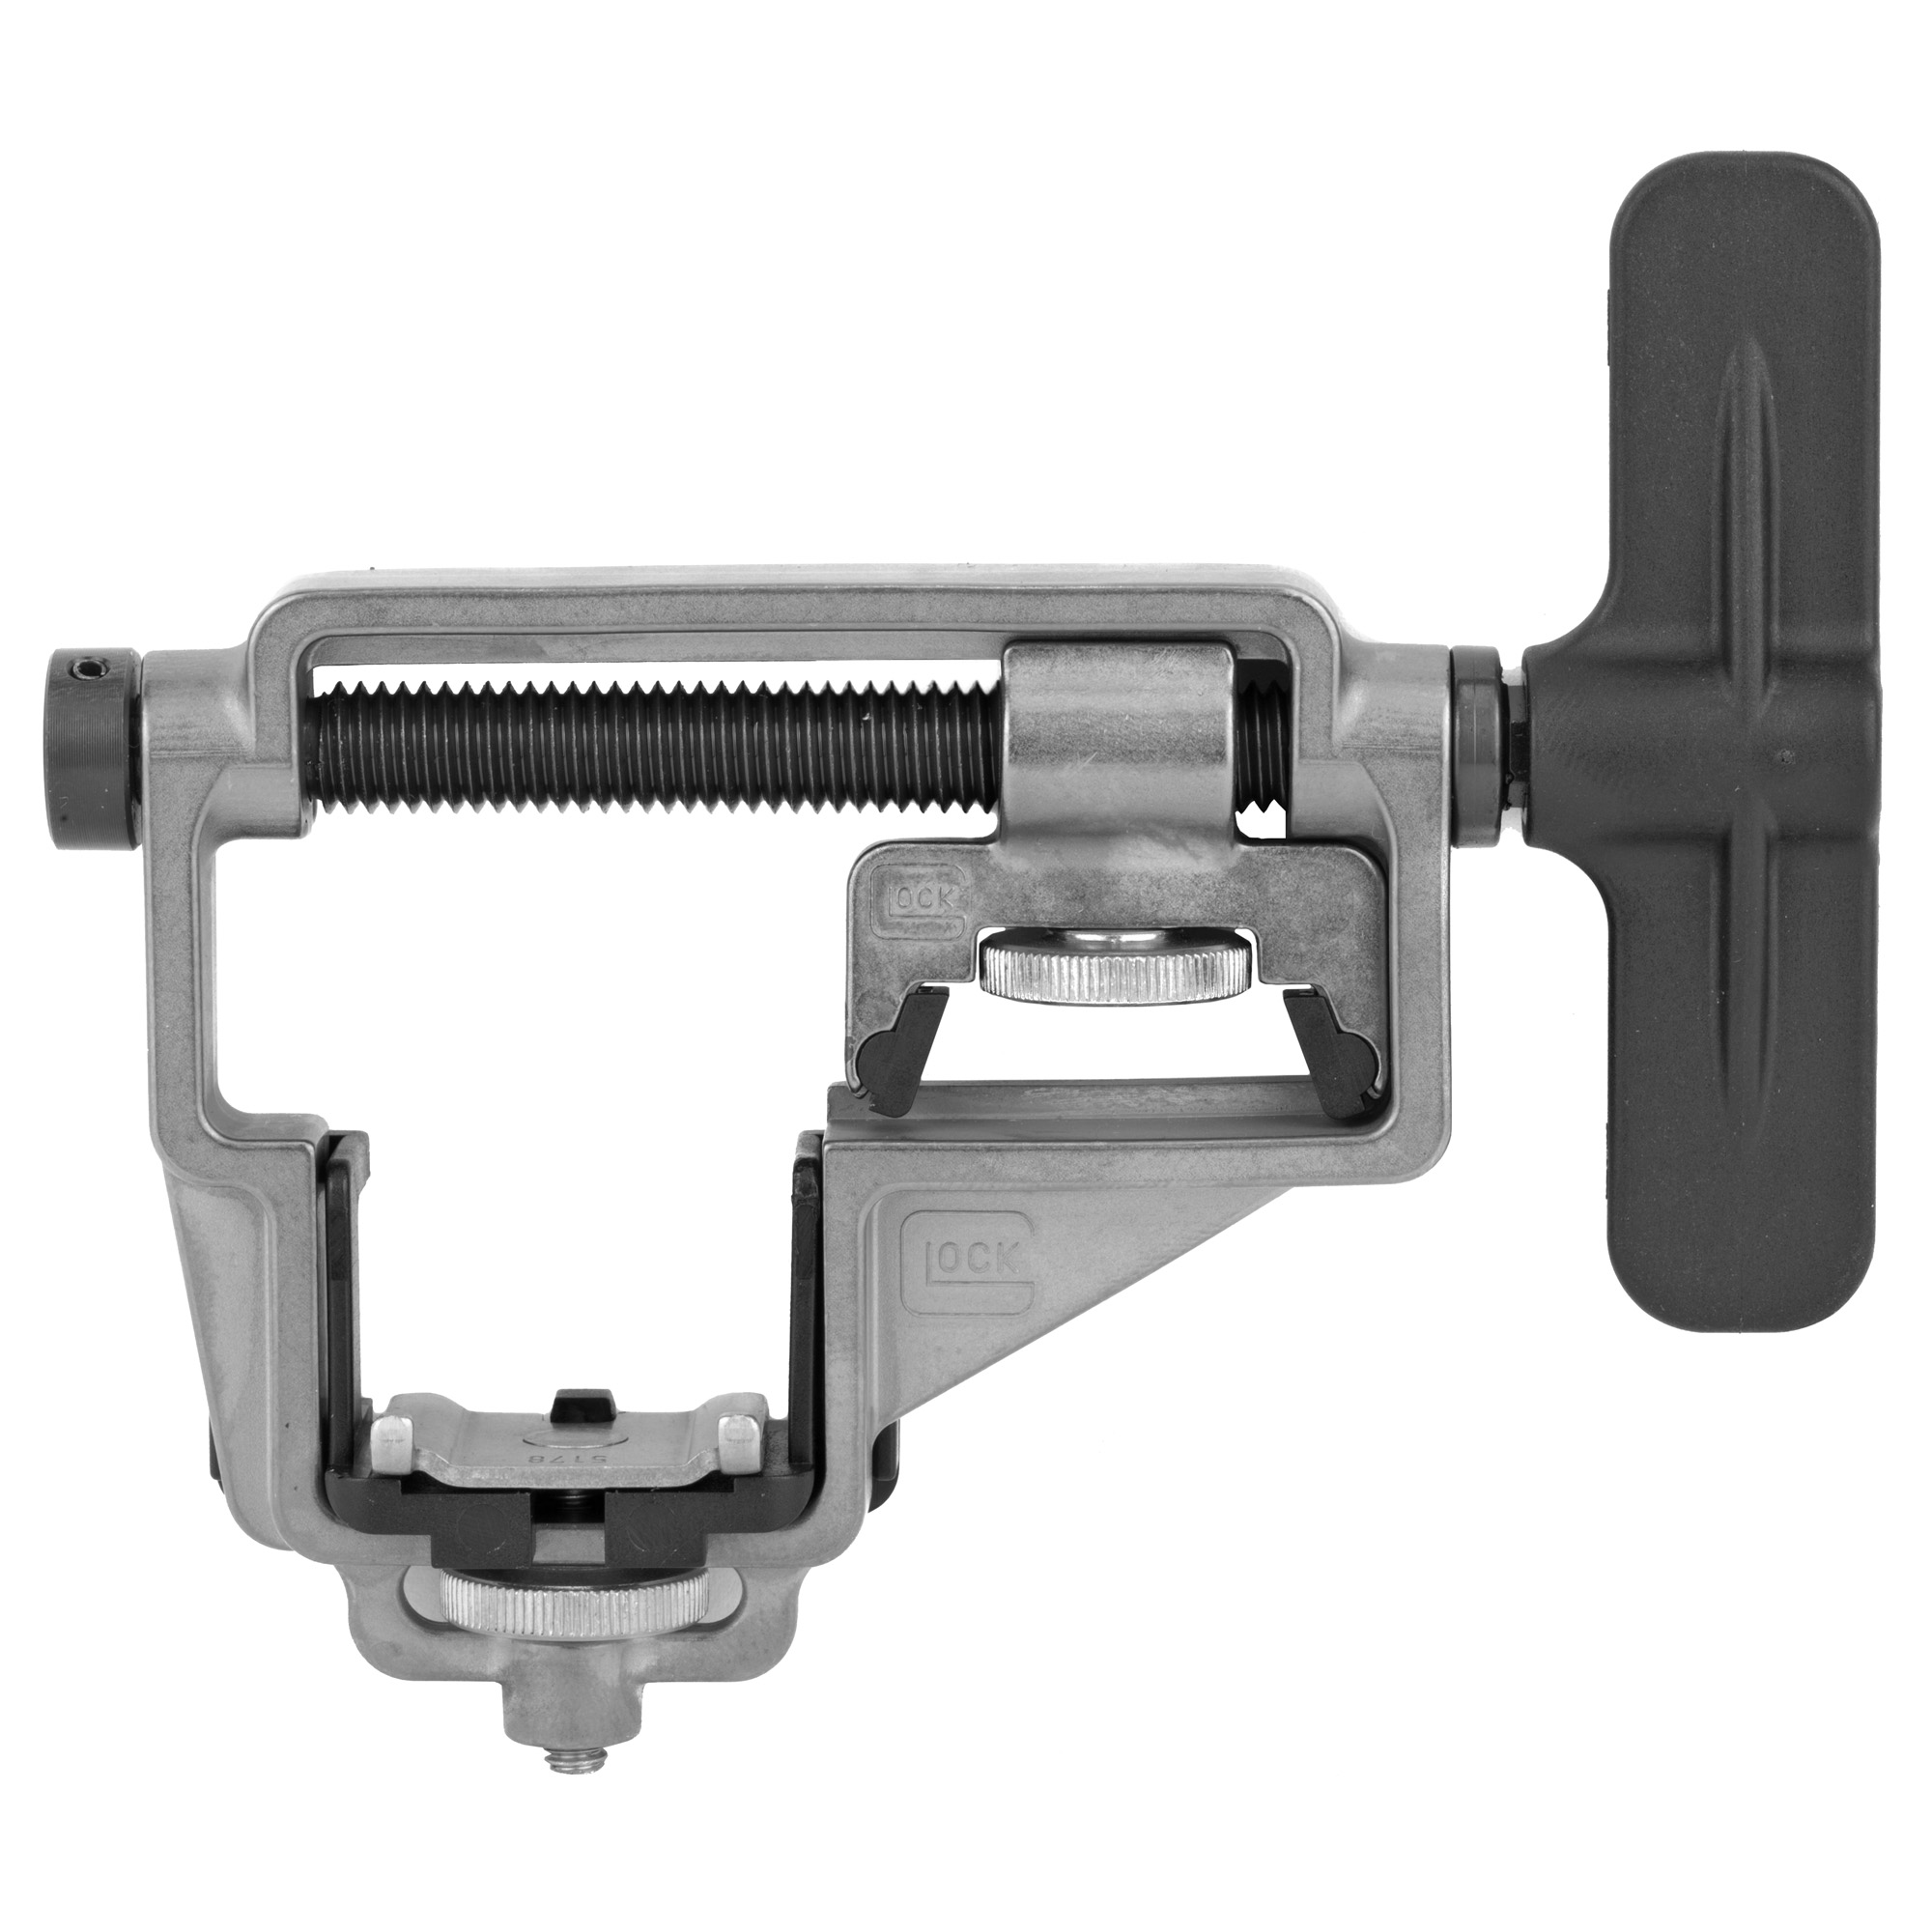 Glock Oem Sight Tool For All Models